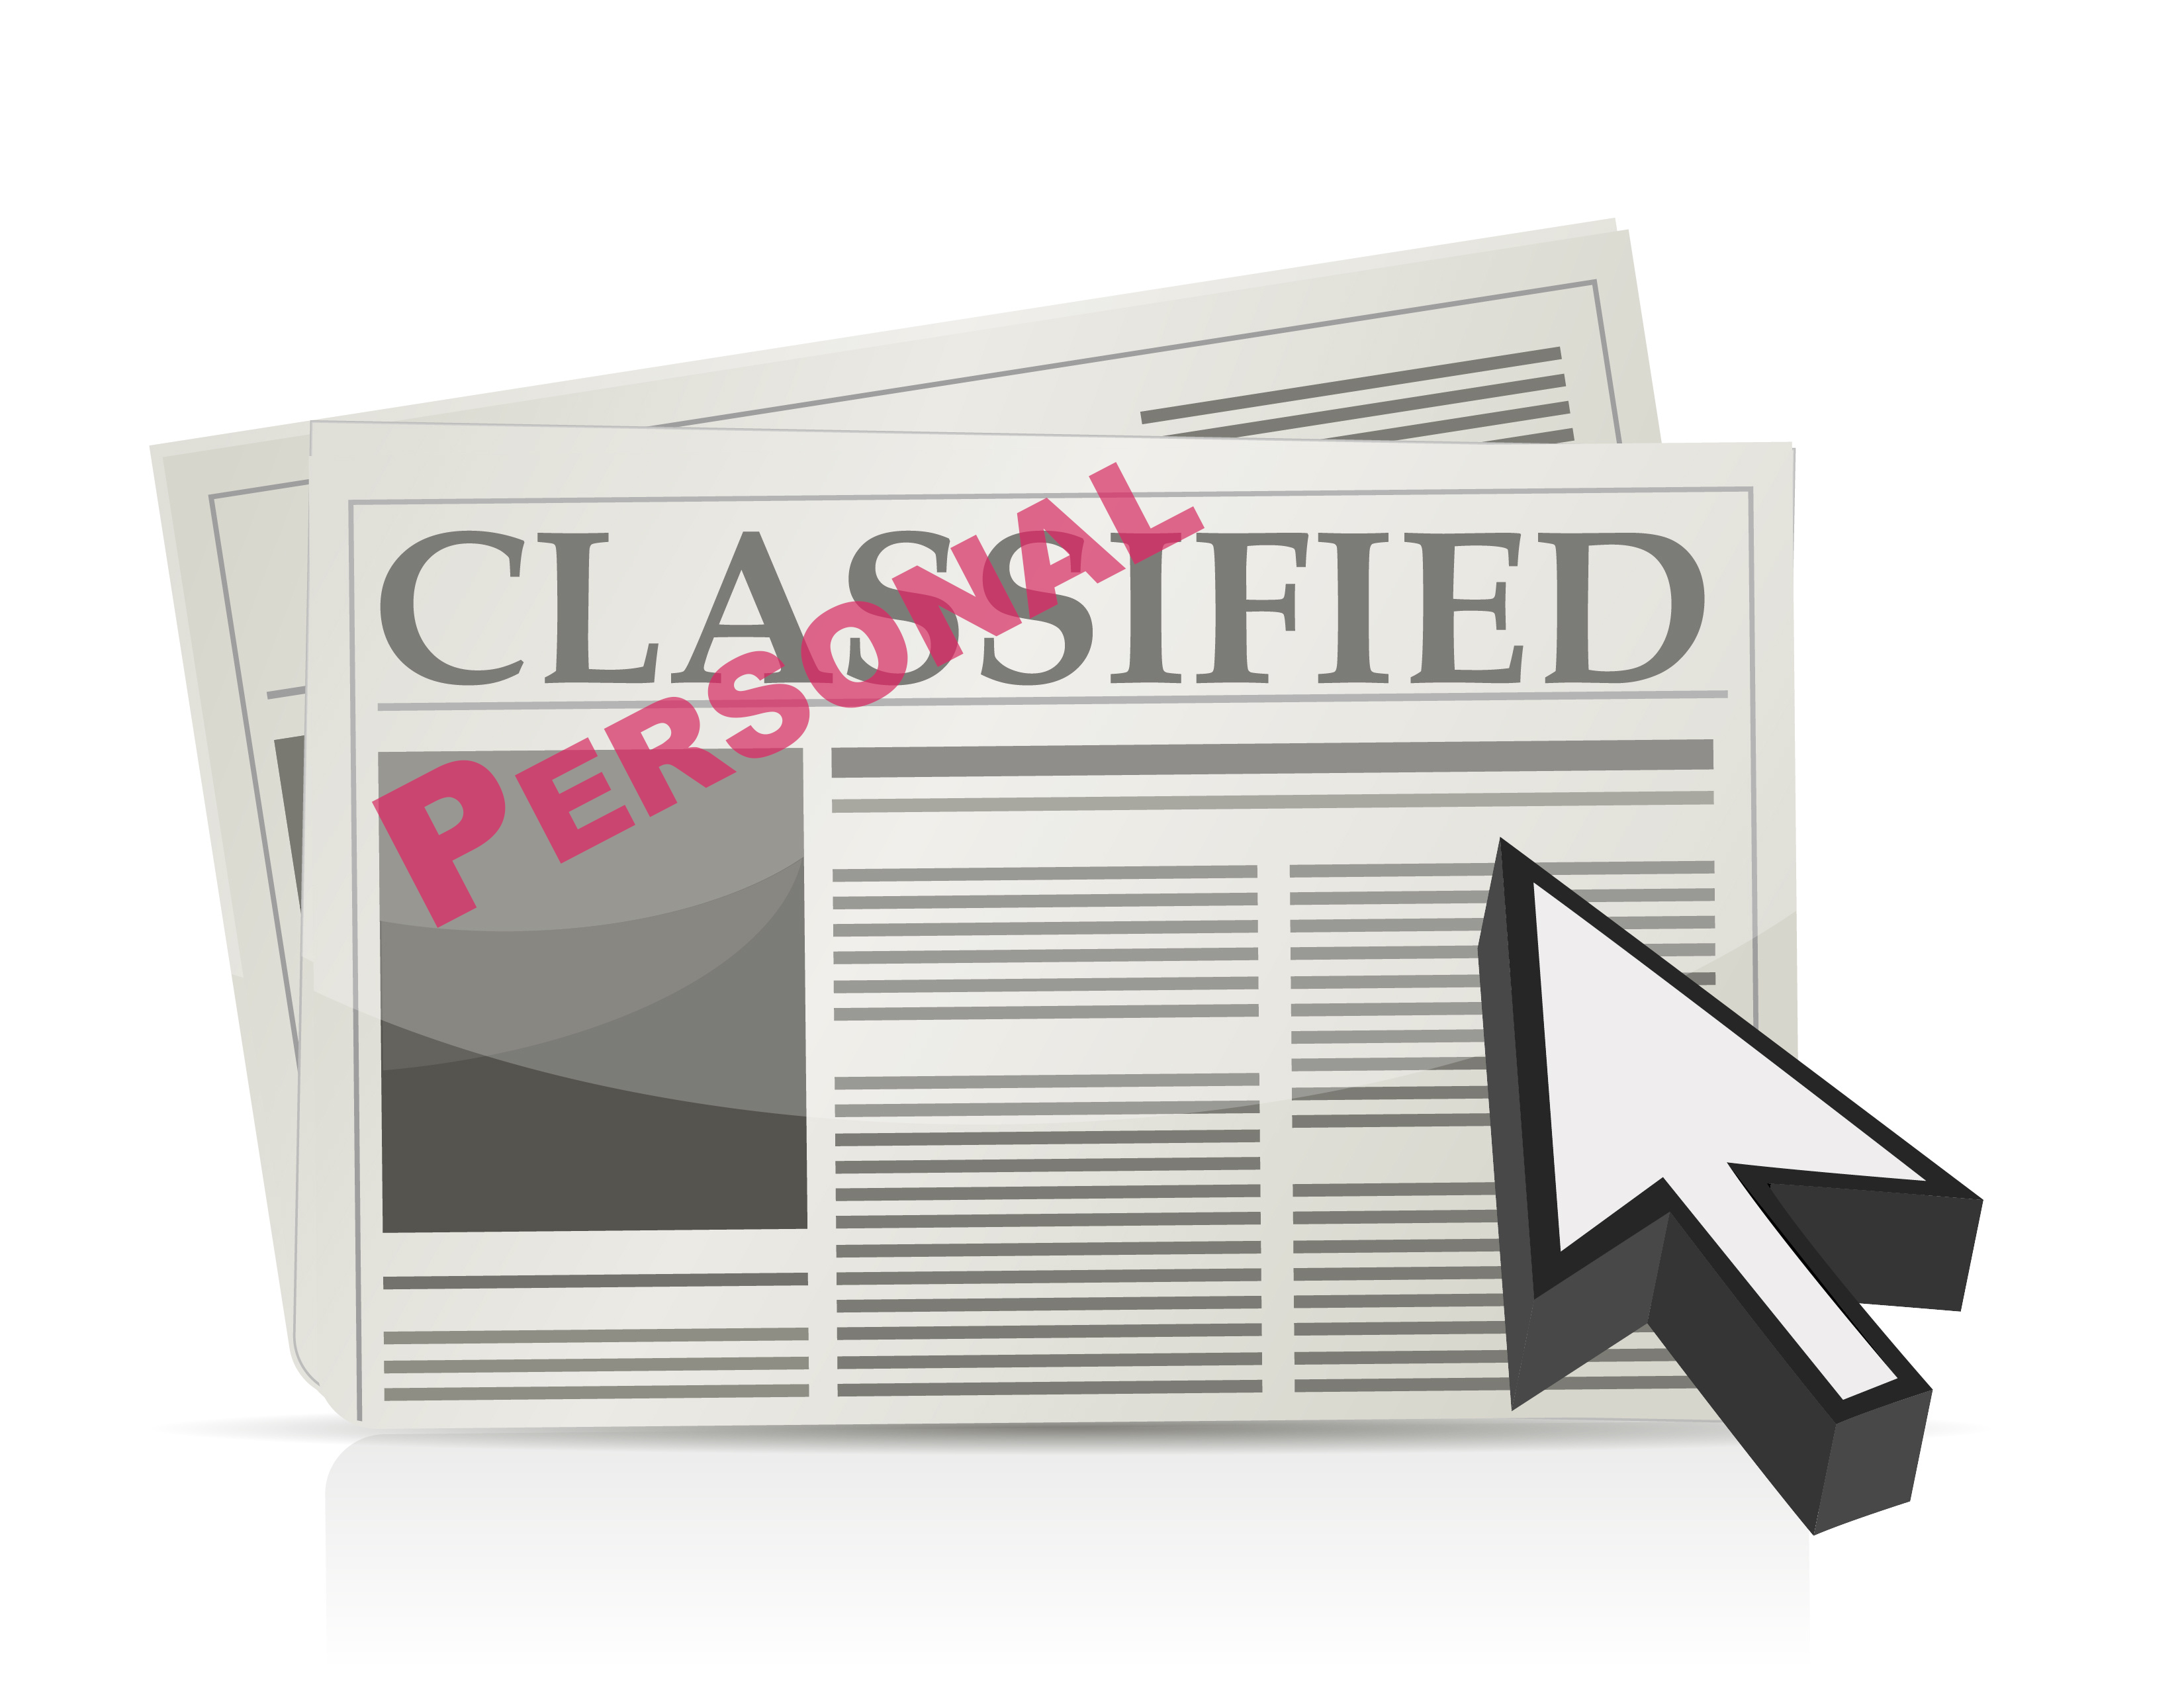 Personal Classifieds - The Sierra Reader